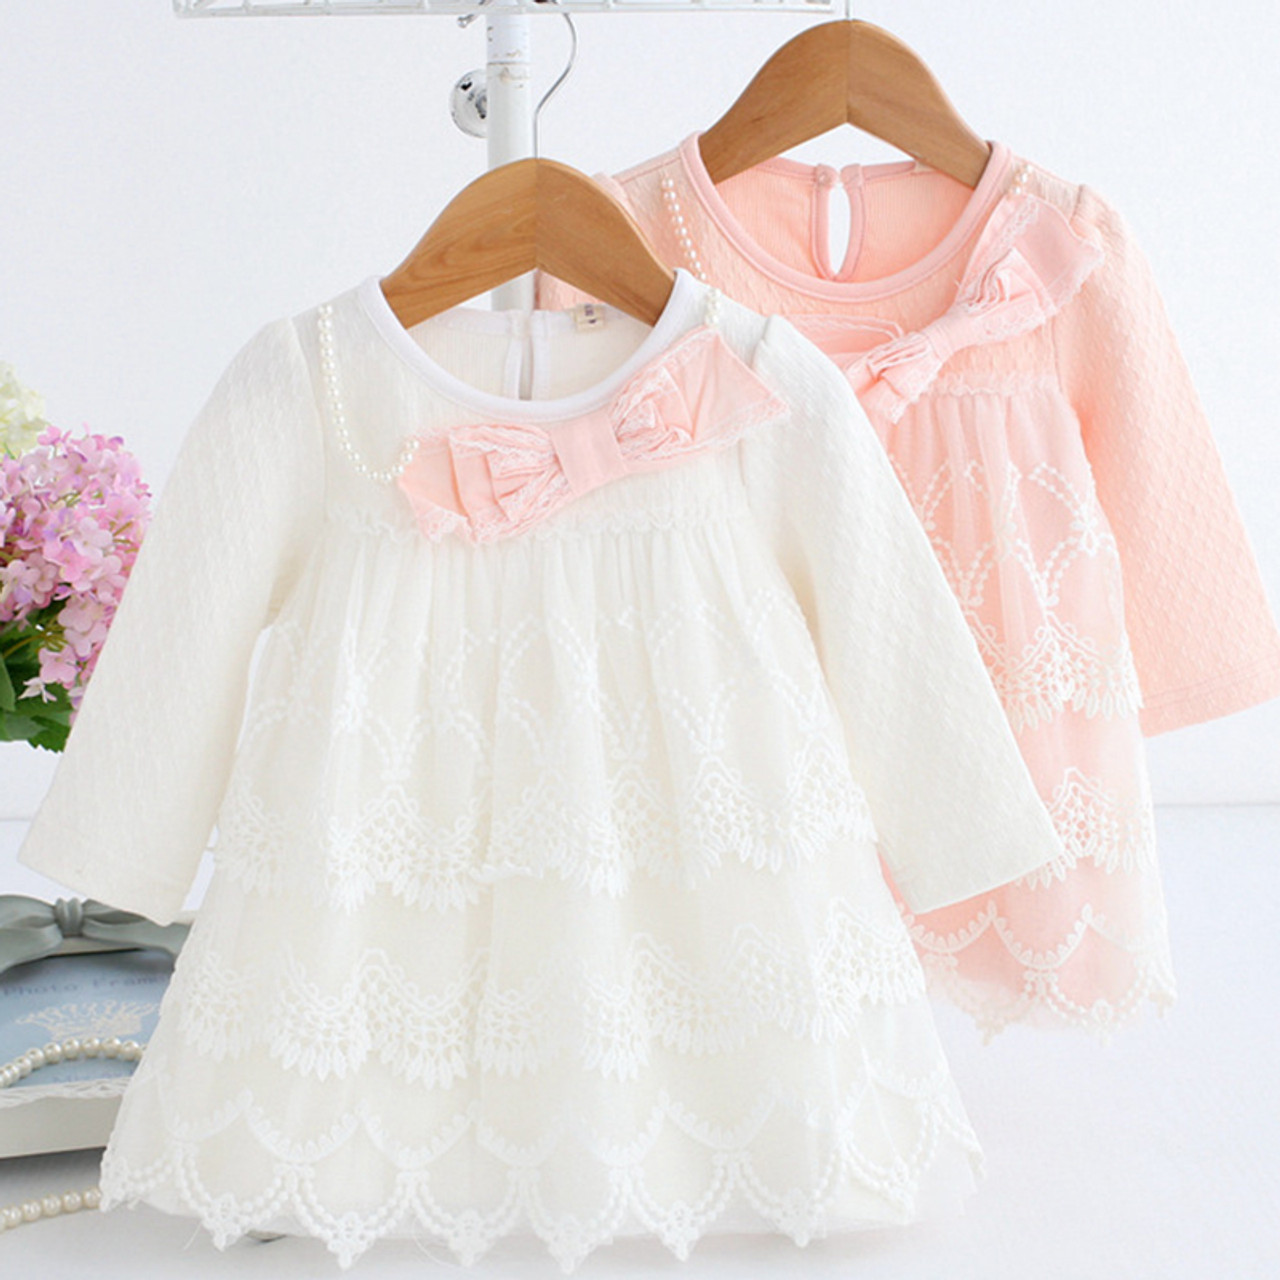 5b81fe2e870ad ... Baby Dress Tiered Dresses Long Sleeve Spring Clothes 1 Year Old Girl  Birthday Dress Soft Cotton ...